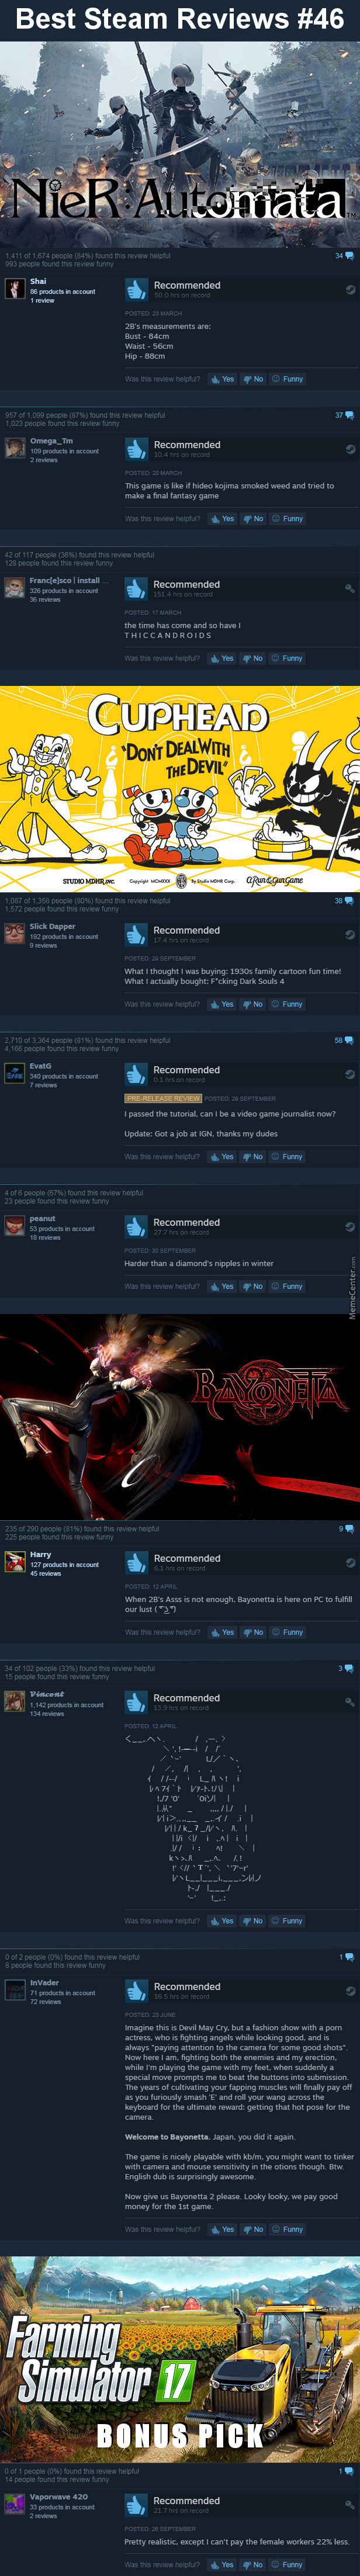 Best Steam Reviews #46 - 'member When I Used To Make These Weekly?